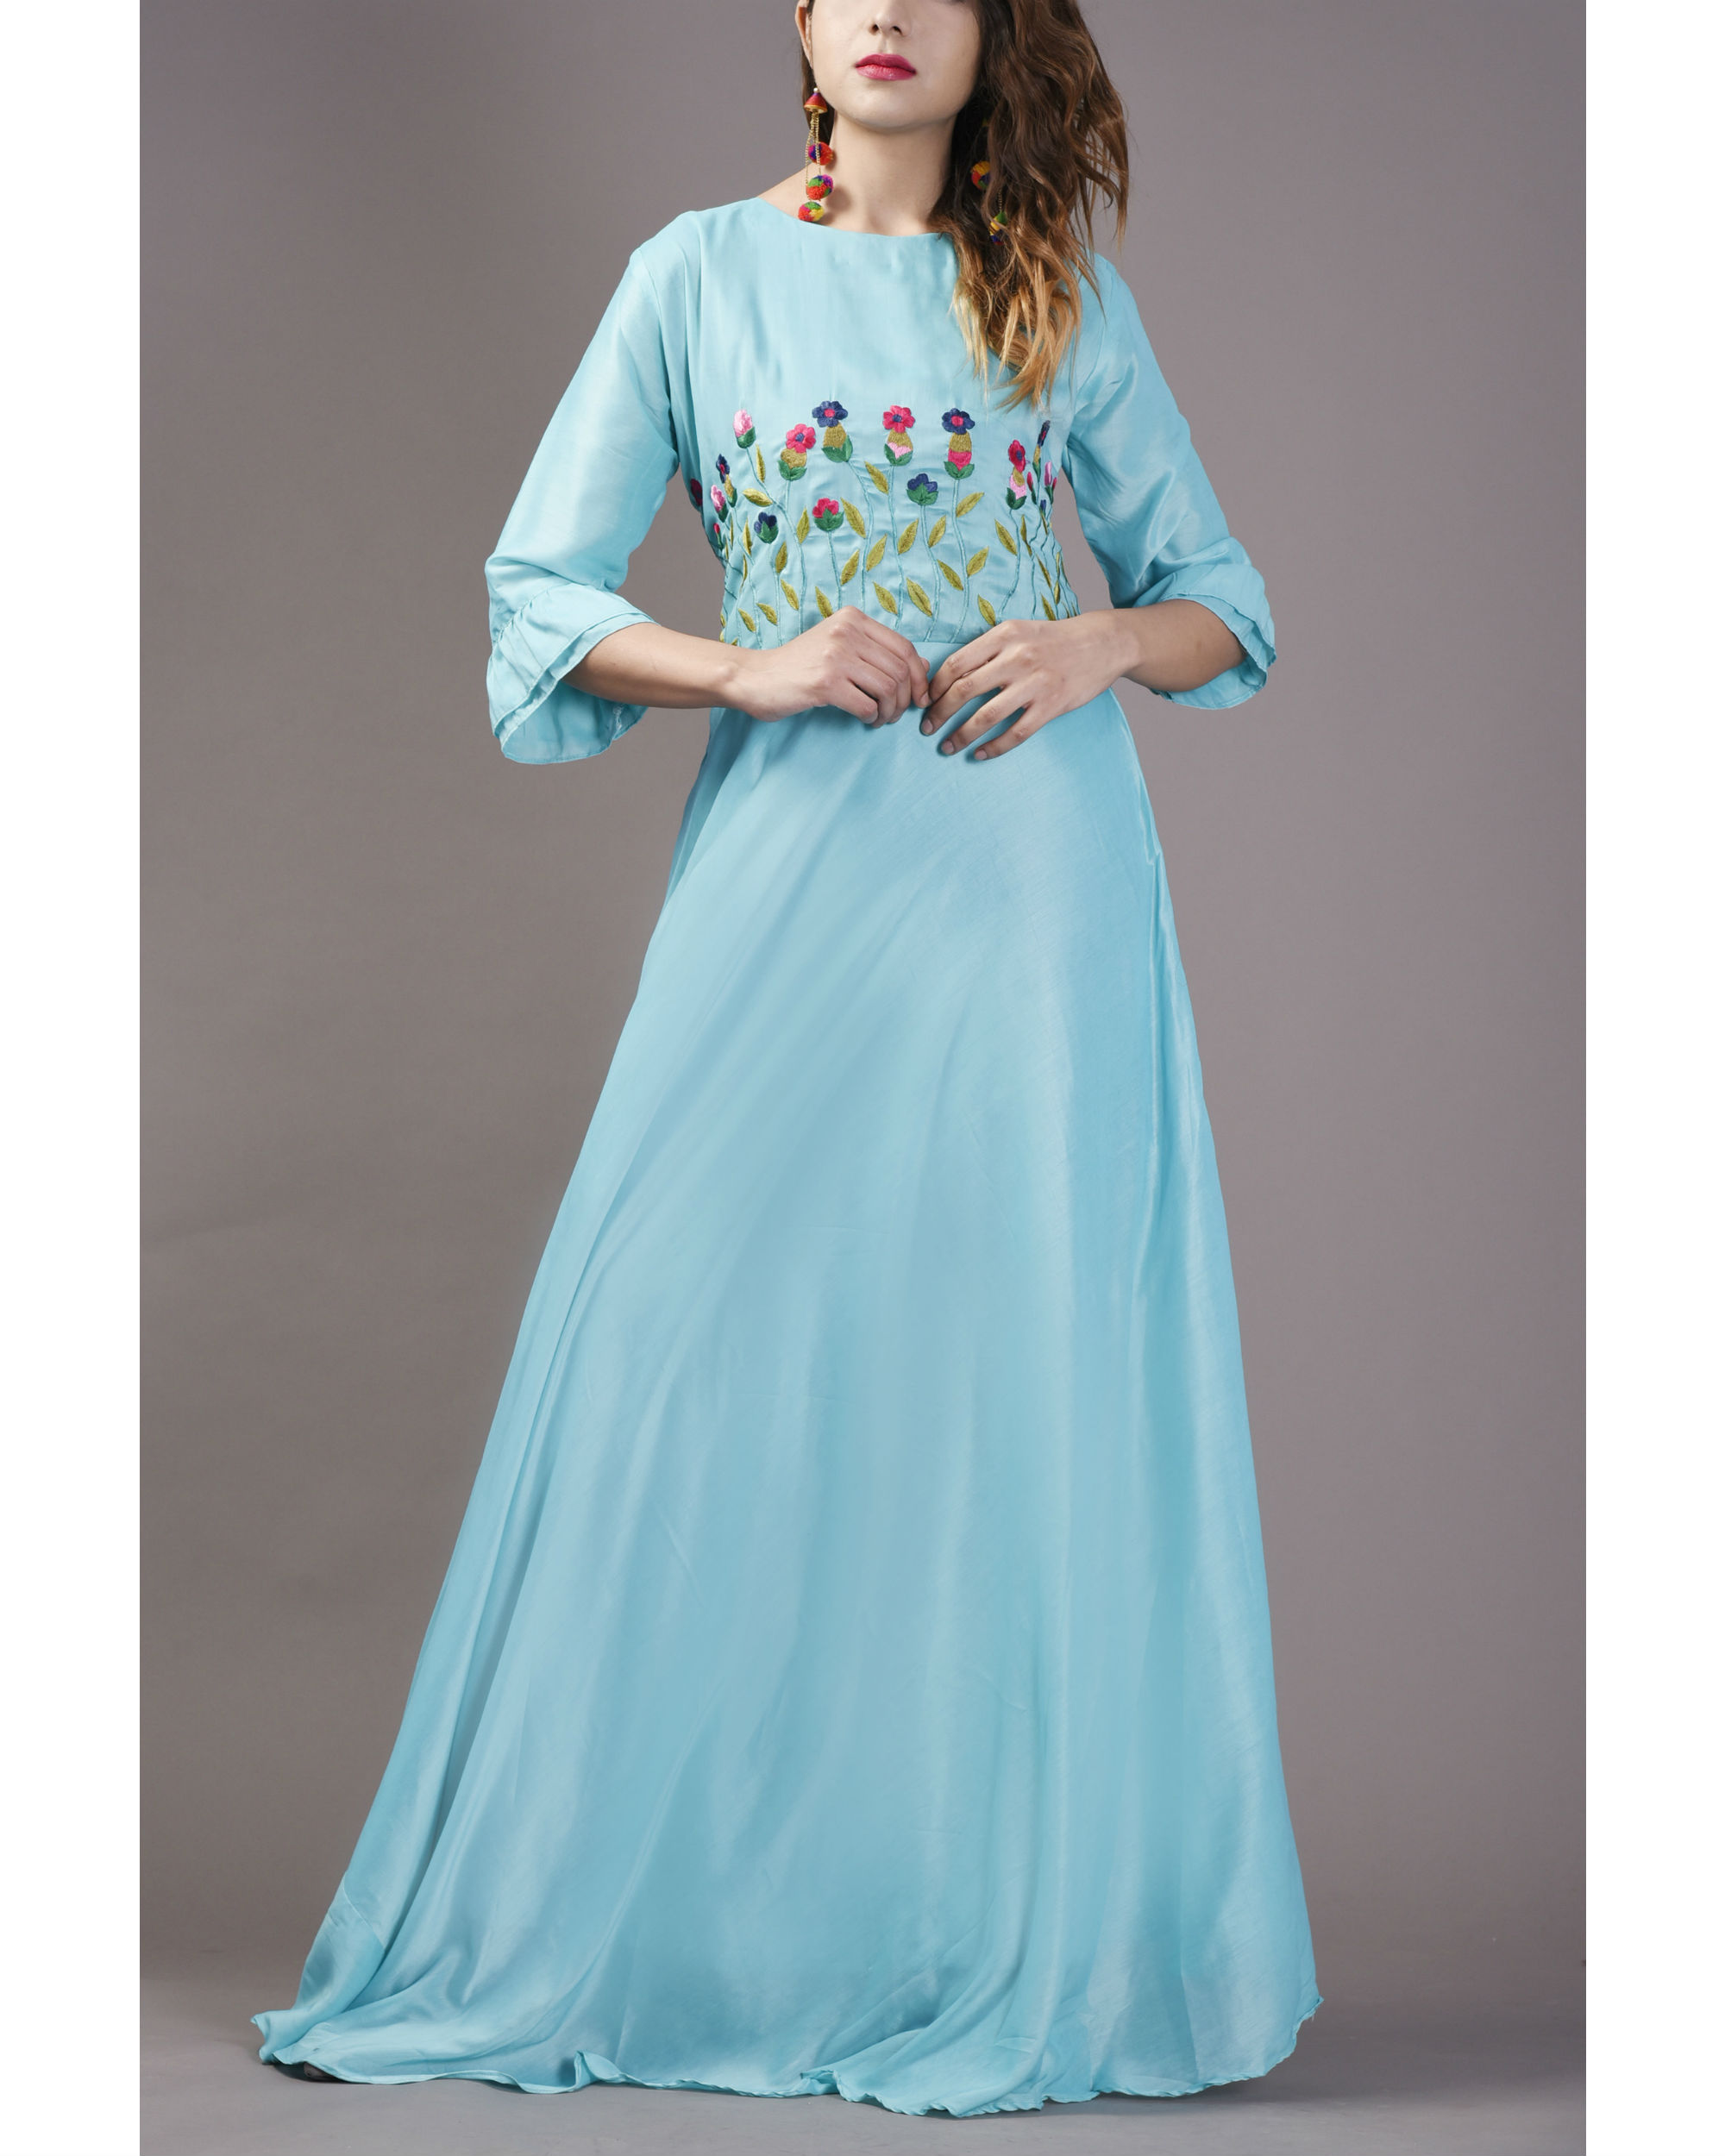 Arctic bell flared gown